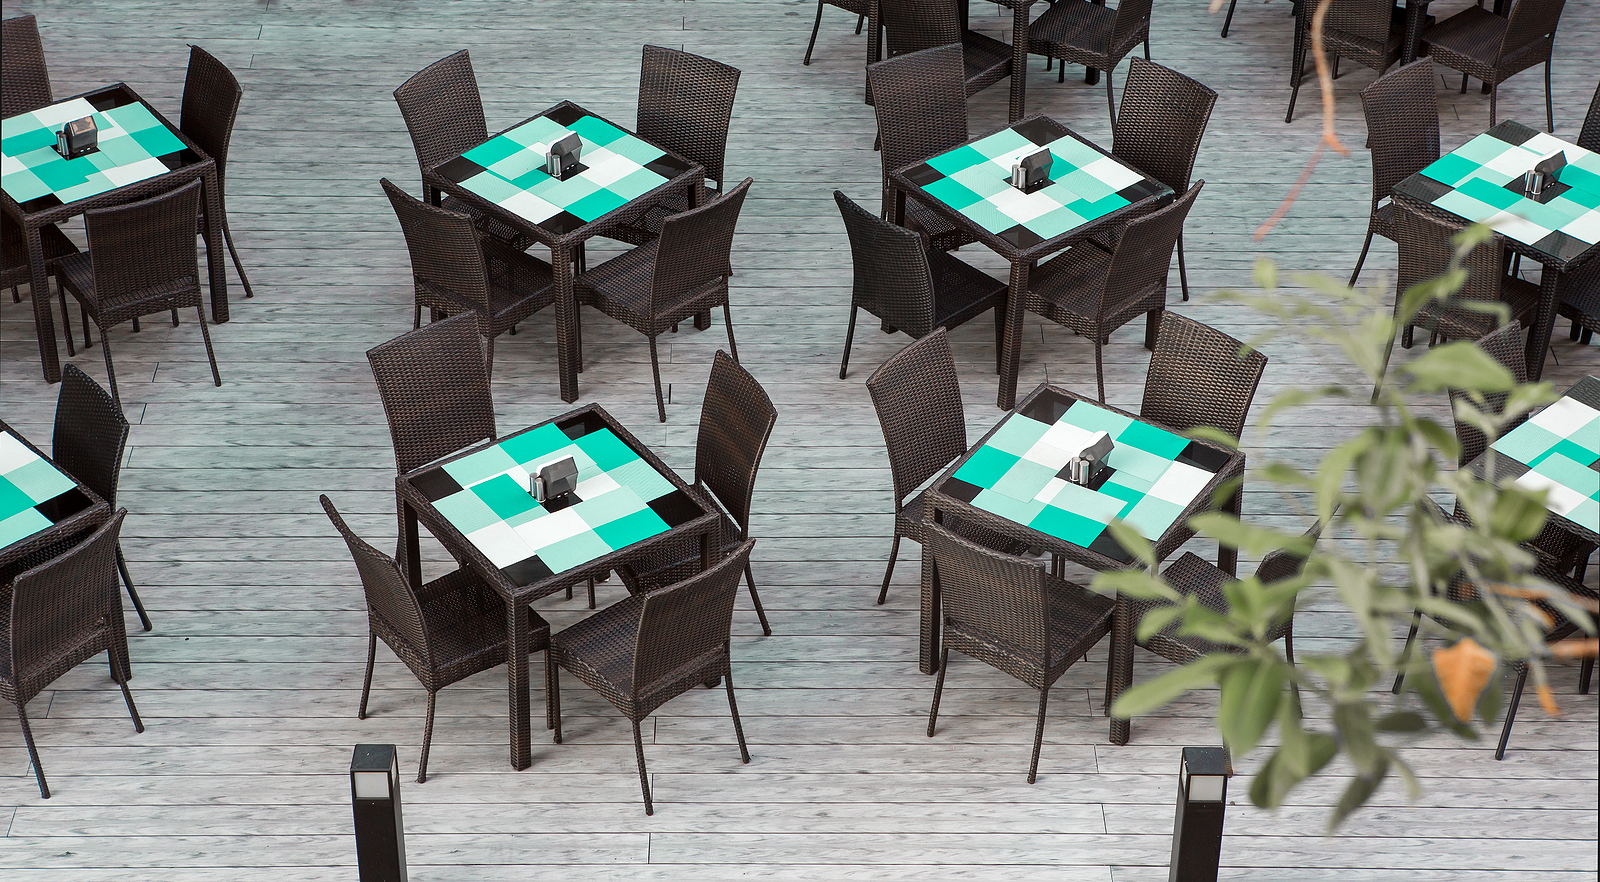 Dining tables and chairs on decking in outdoor restaurant area